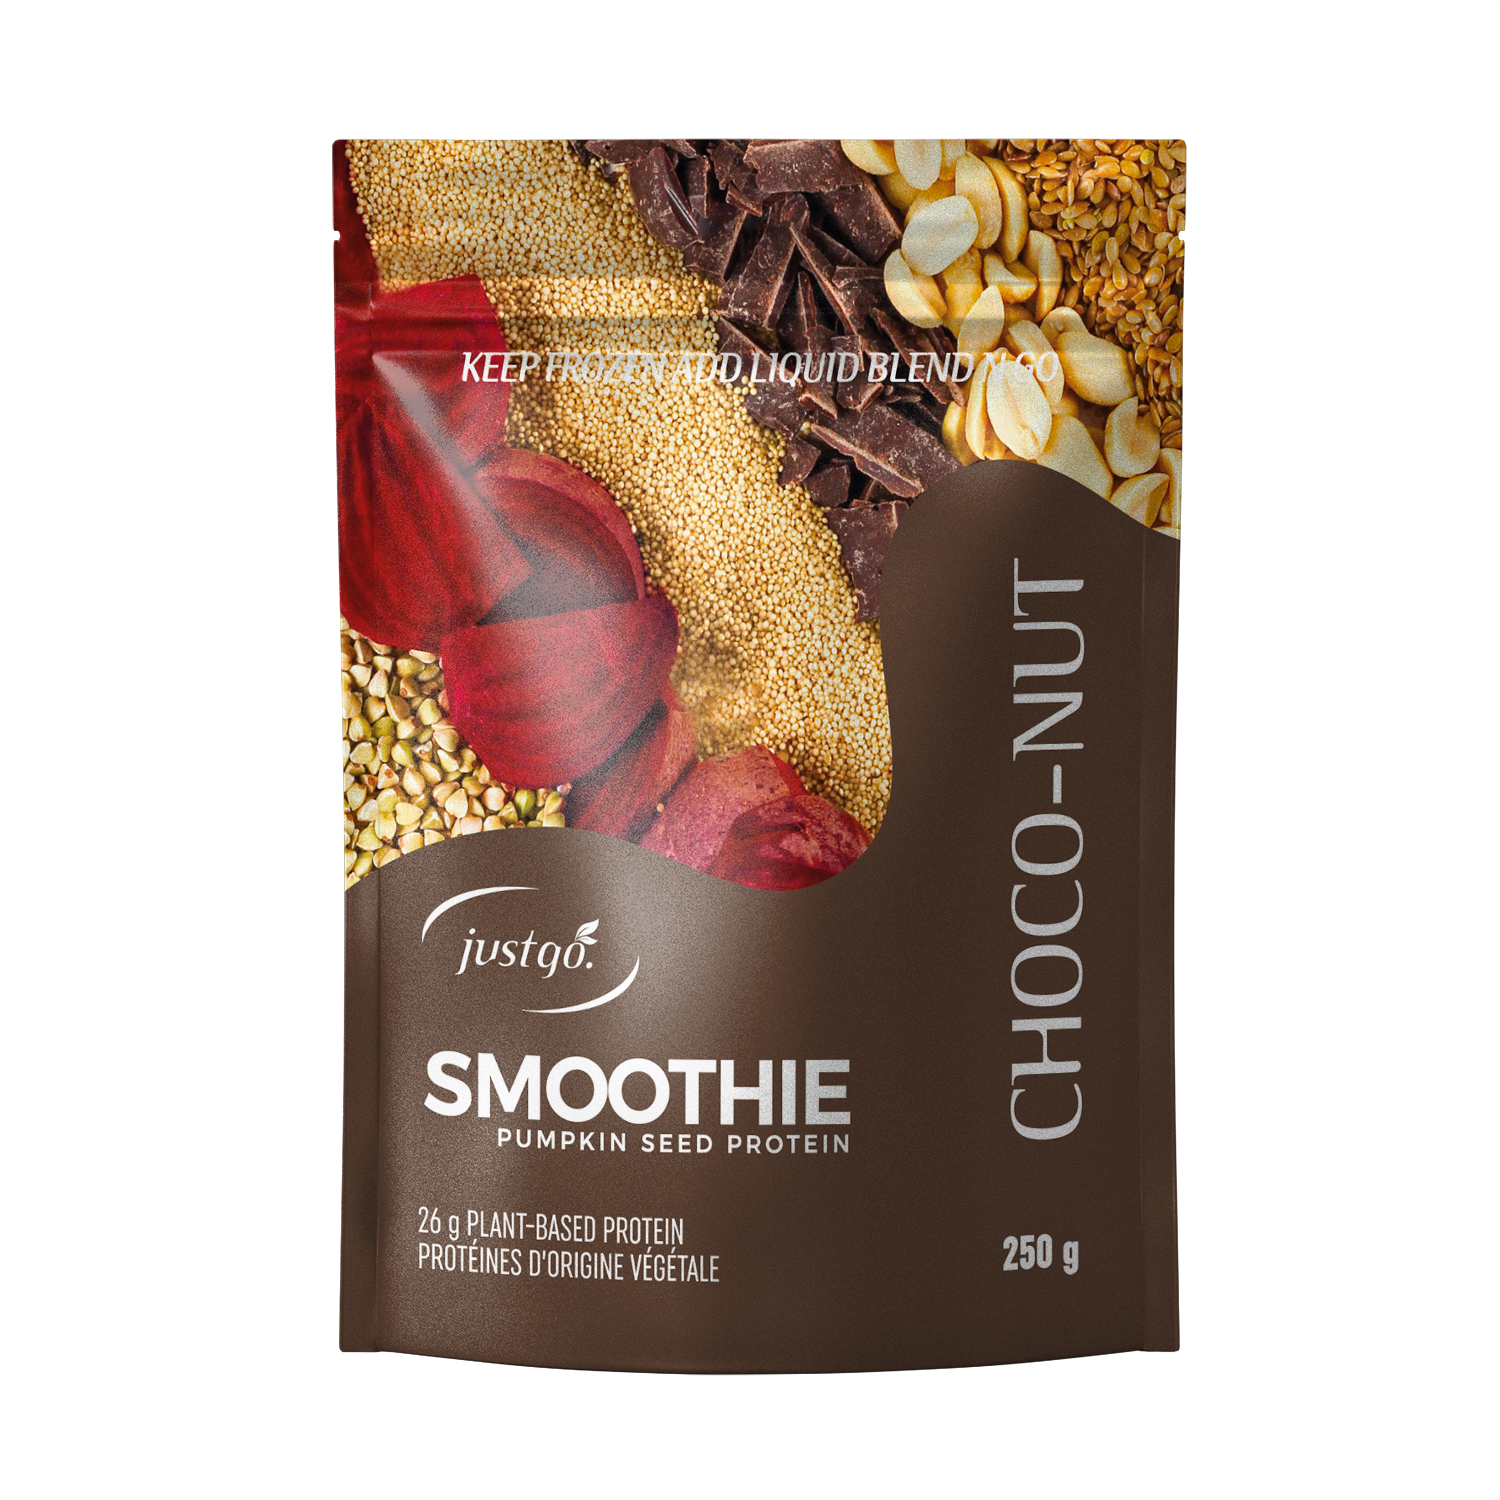 Choco-Nut Full Pack - Just Go Smoothie